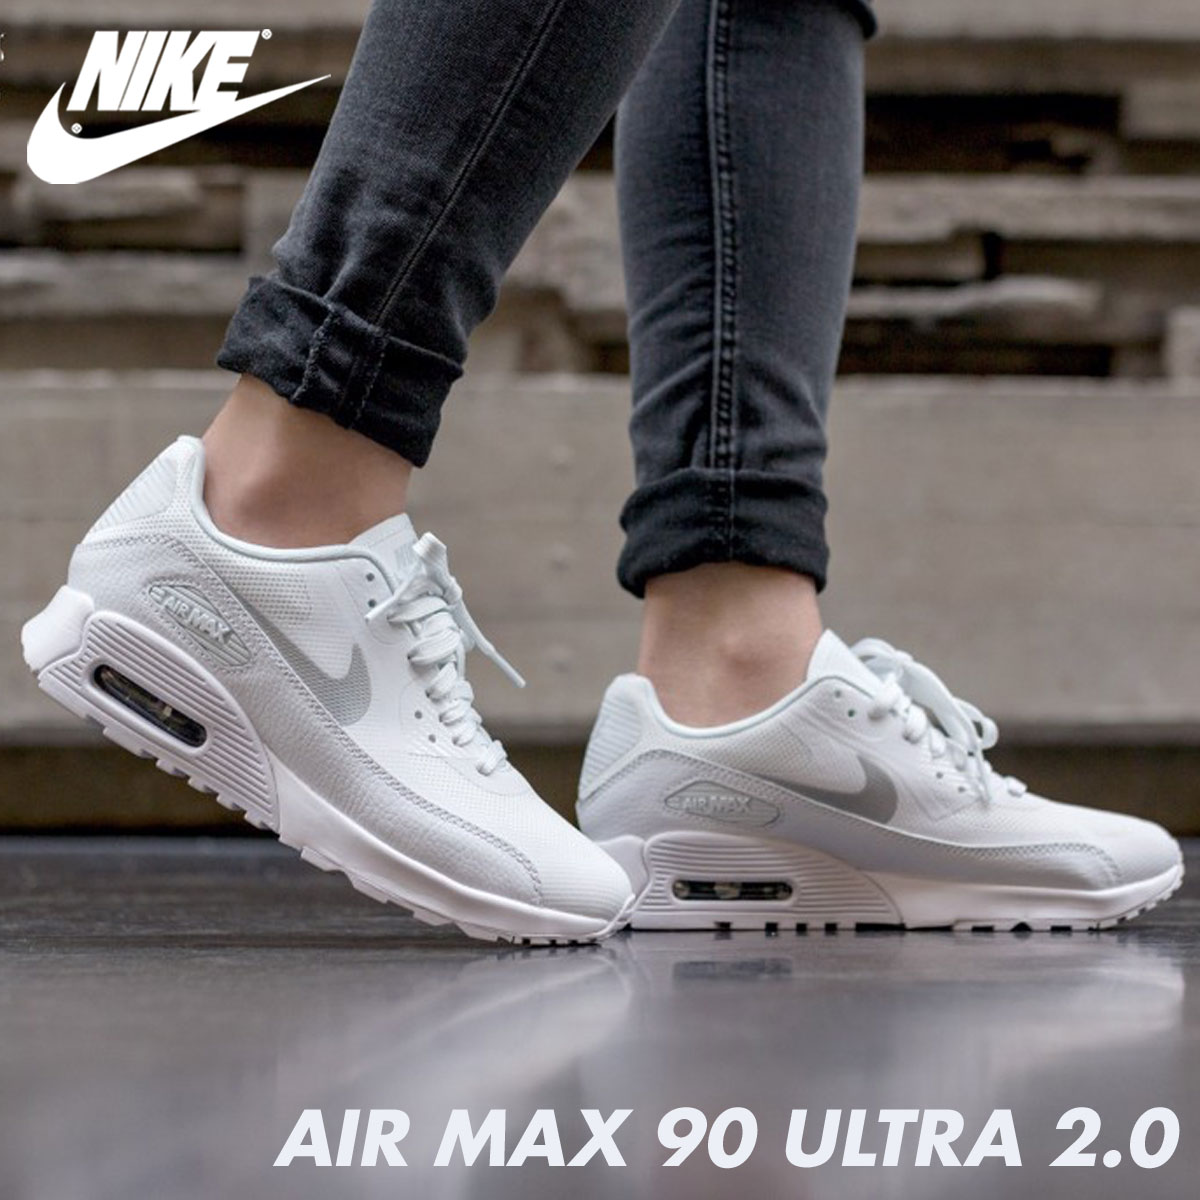 NIKE Kie Ney AMAX 90 ultra Lady's sneakers WMNS AIR MAX 90 ULTRA 2.0 881,106 101 shoes white